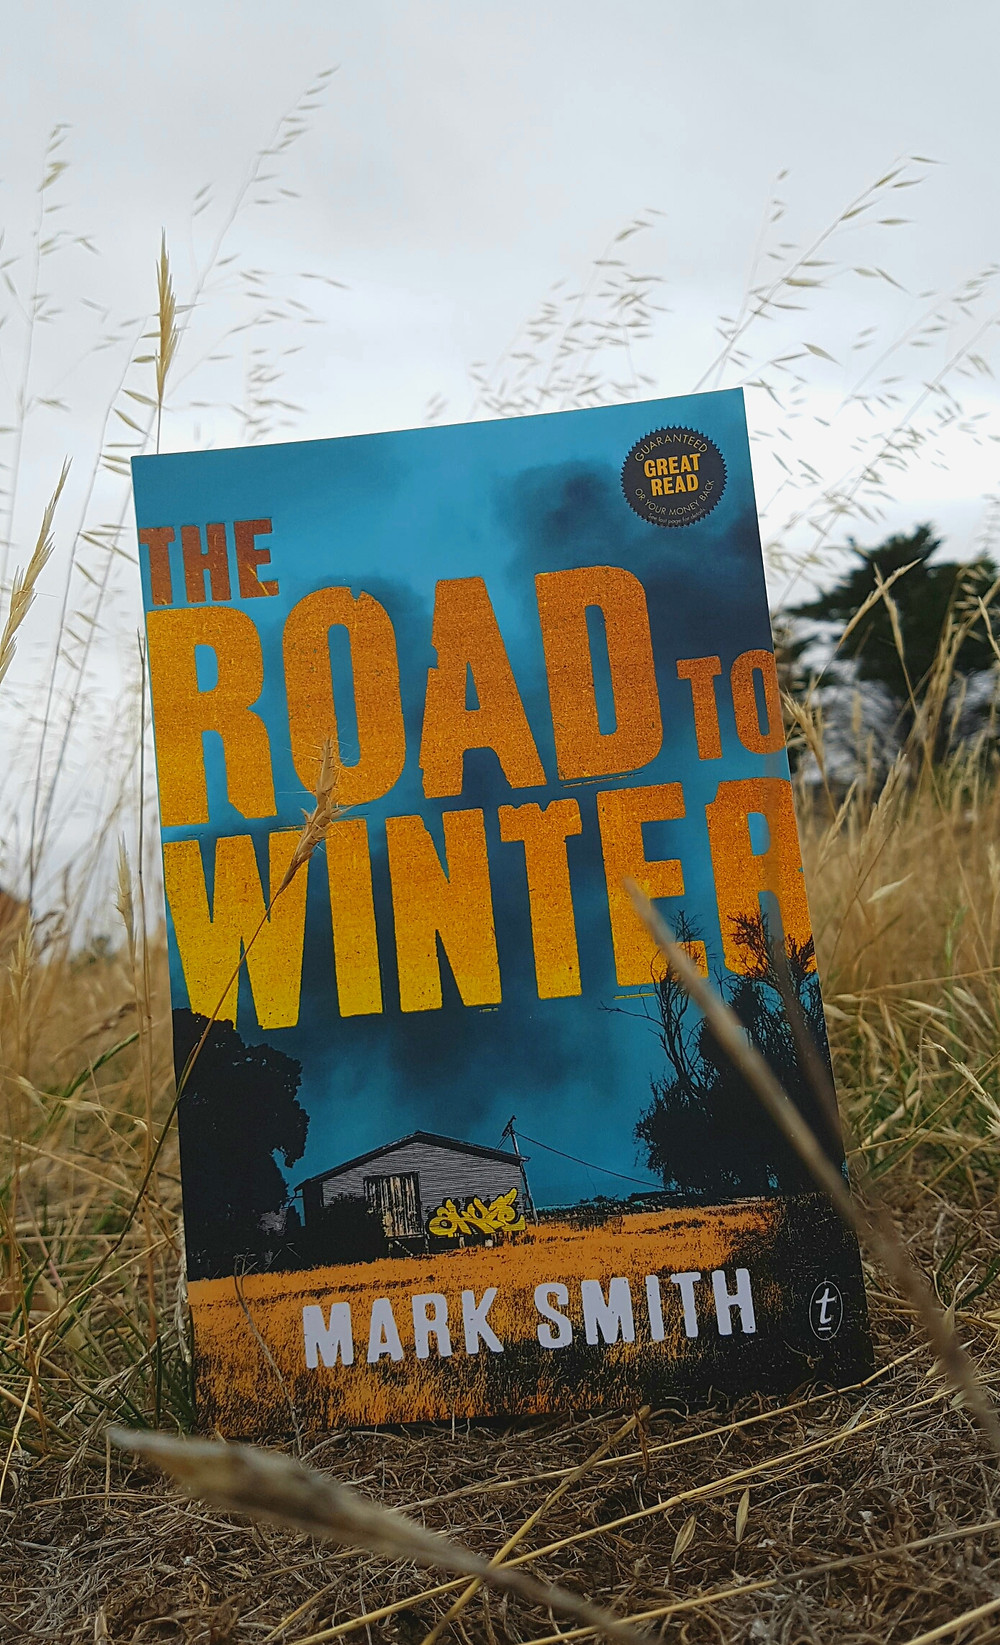 Photo of Road to Winter, Mark Smith.